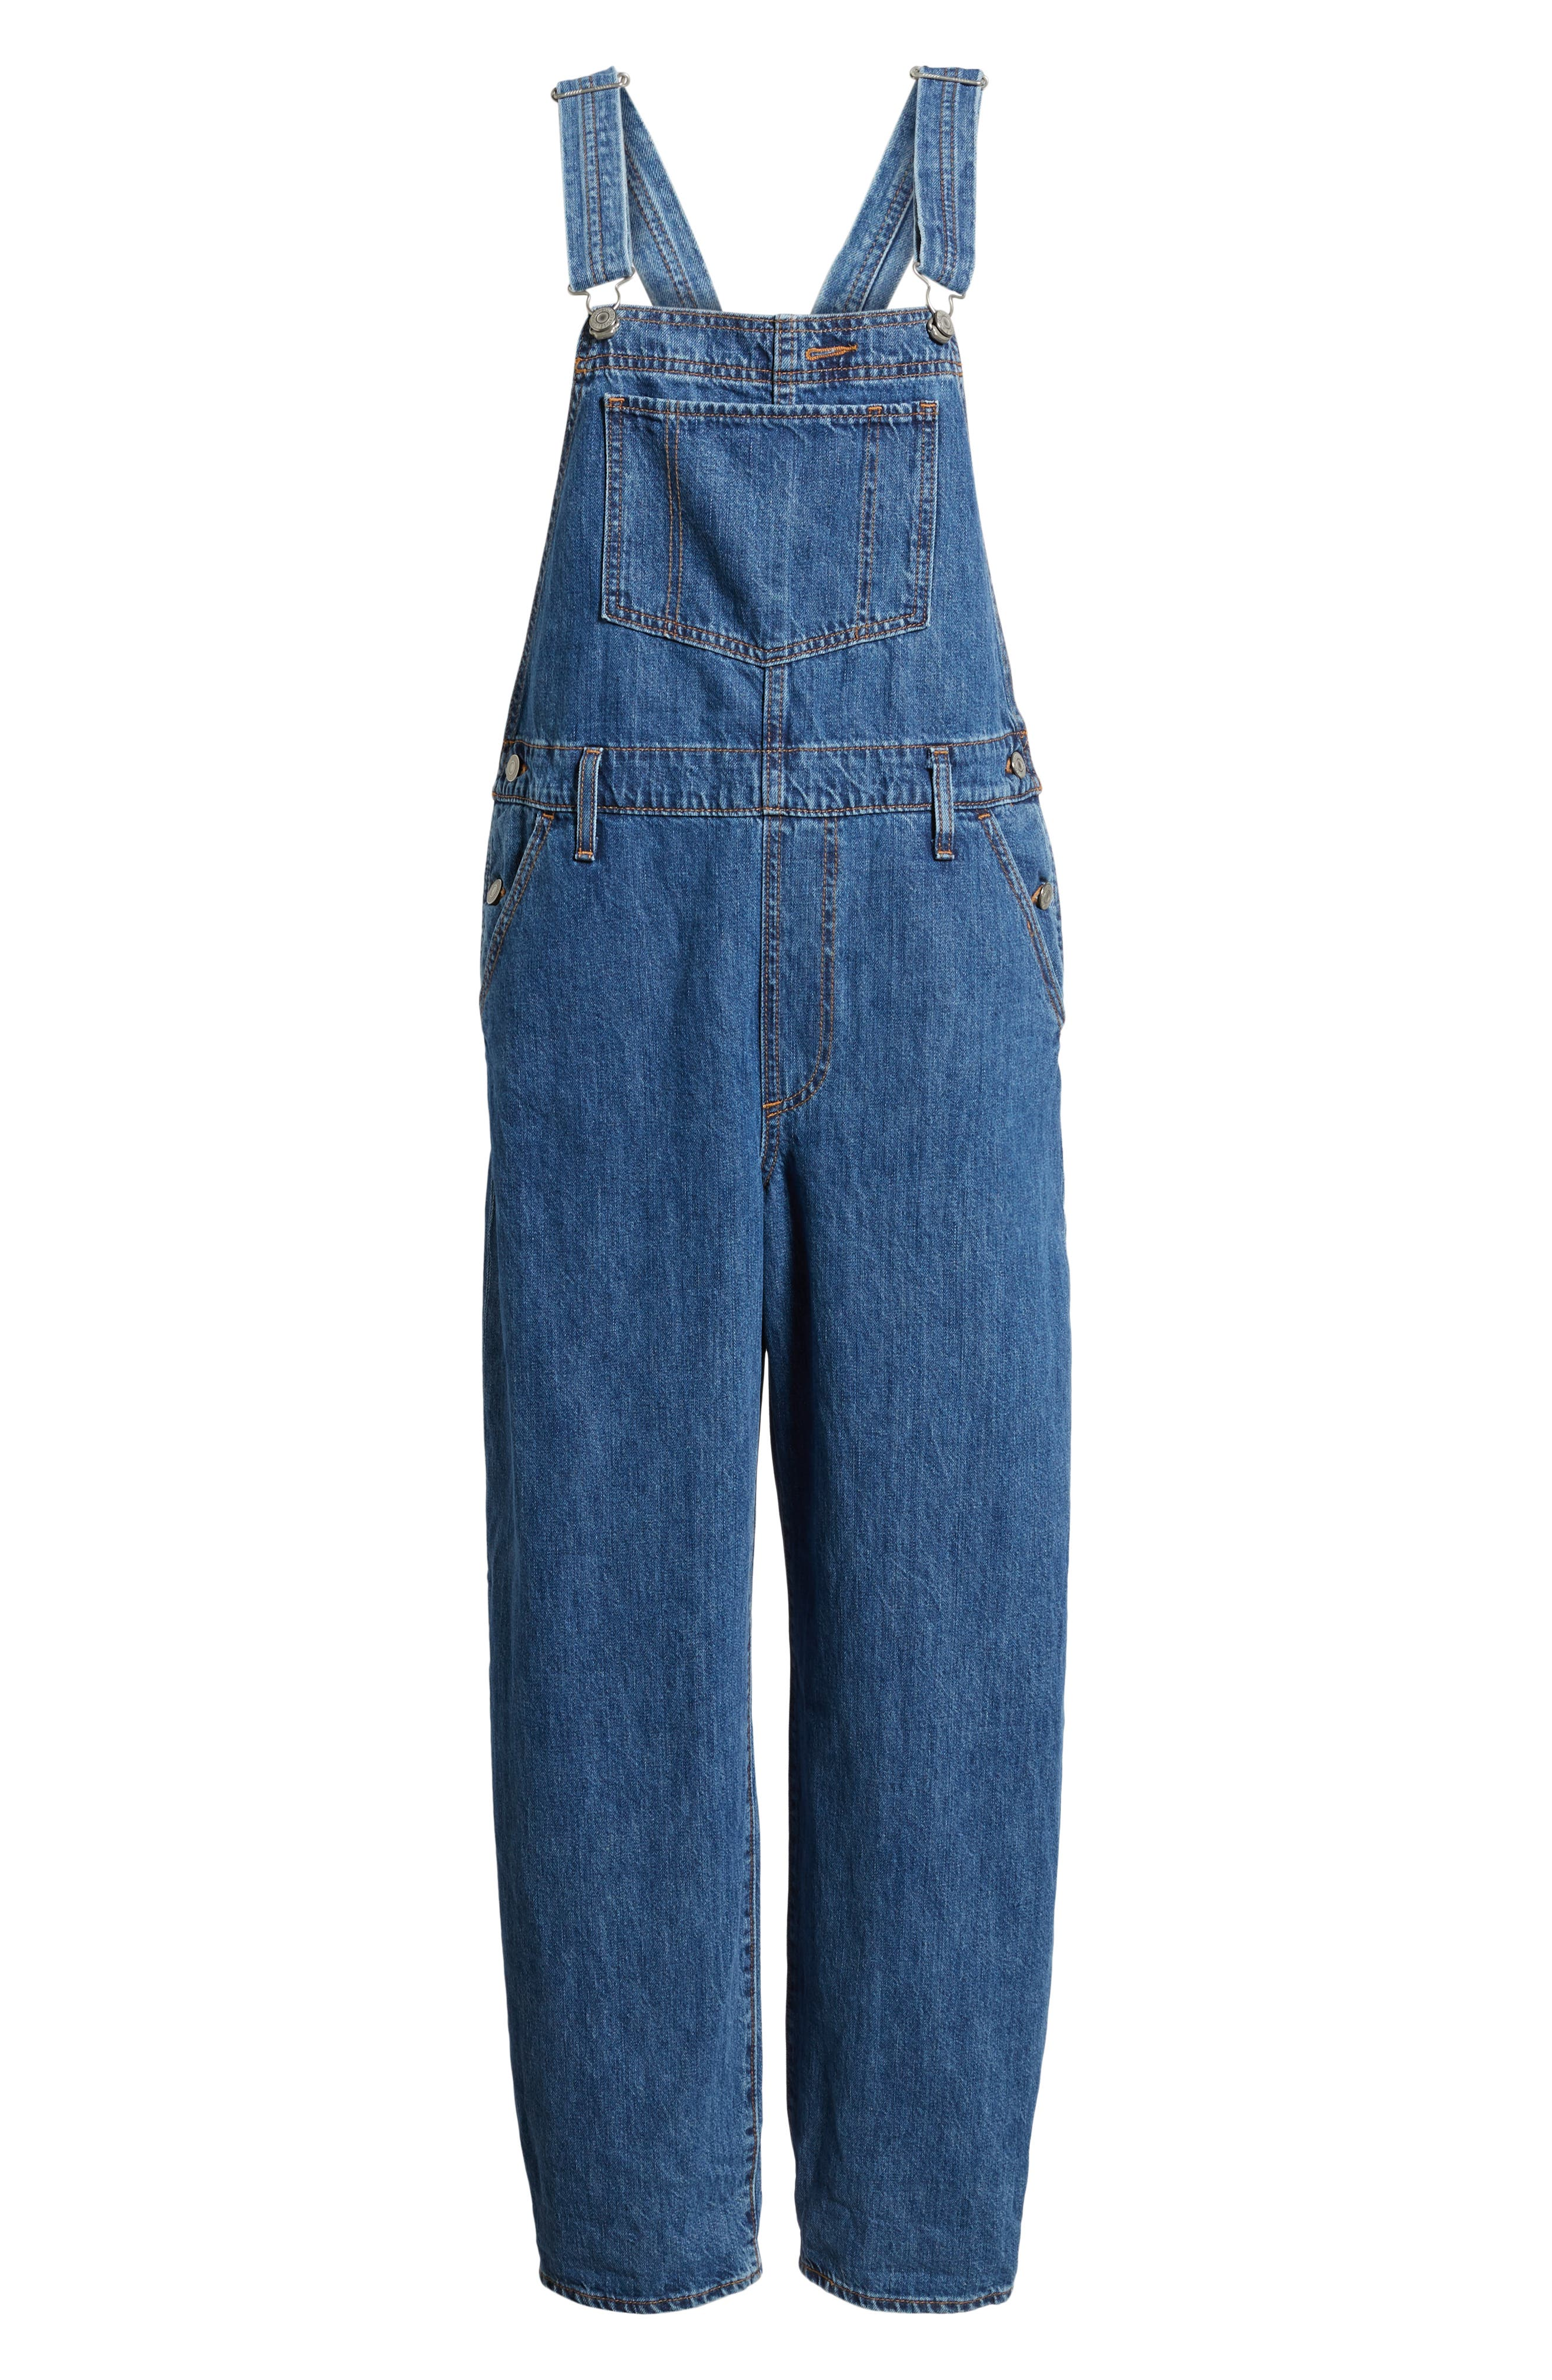 Baggy Overalls,                             Alternate thumbnail 7, color,                             401